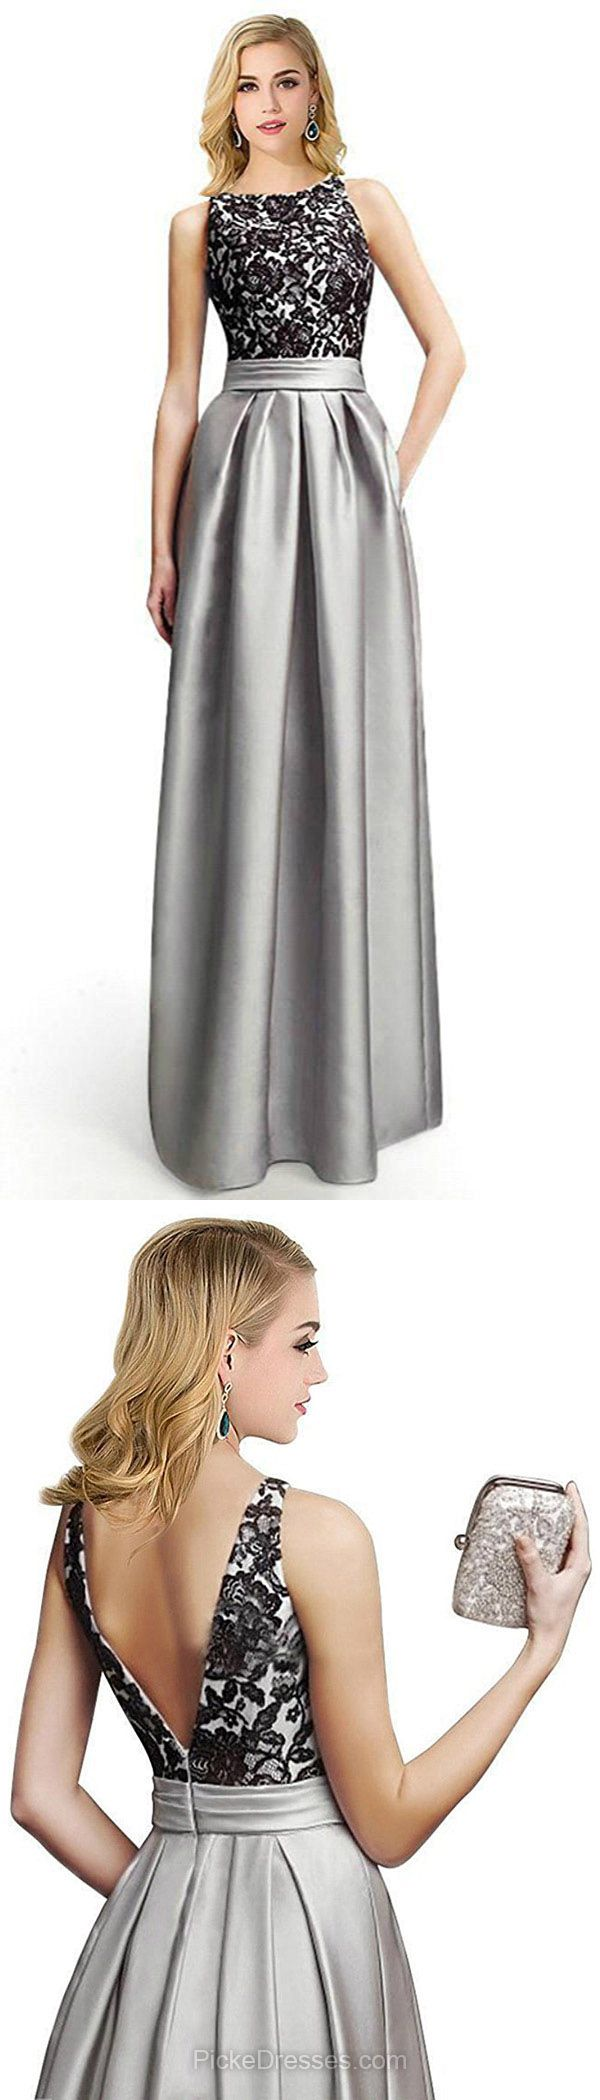 Long Prom Dresses Lace, Silver Prom Dresses For Teens 2018, A-line Evening Party Dresses Scoop Neck, Satin Formal Pageant Dresses with Appliques